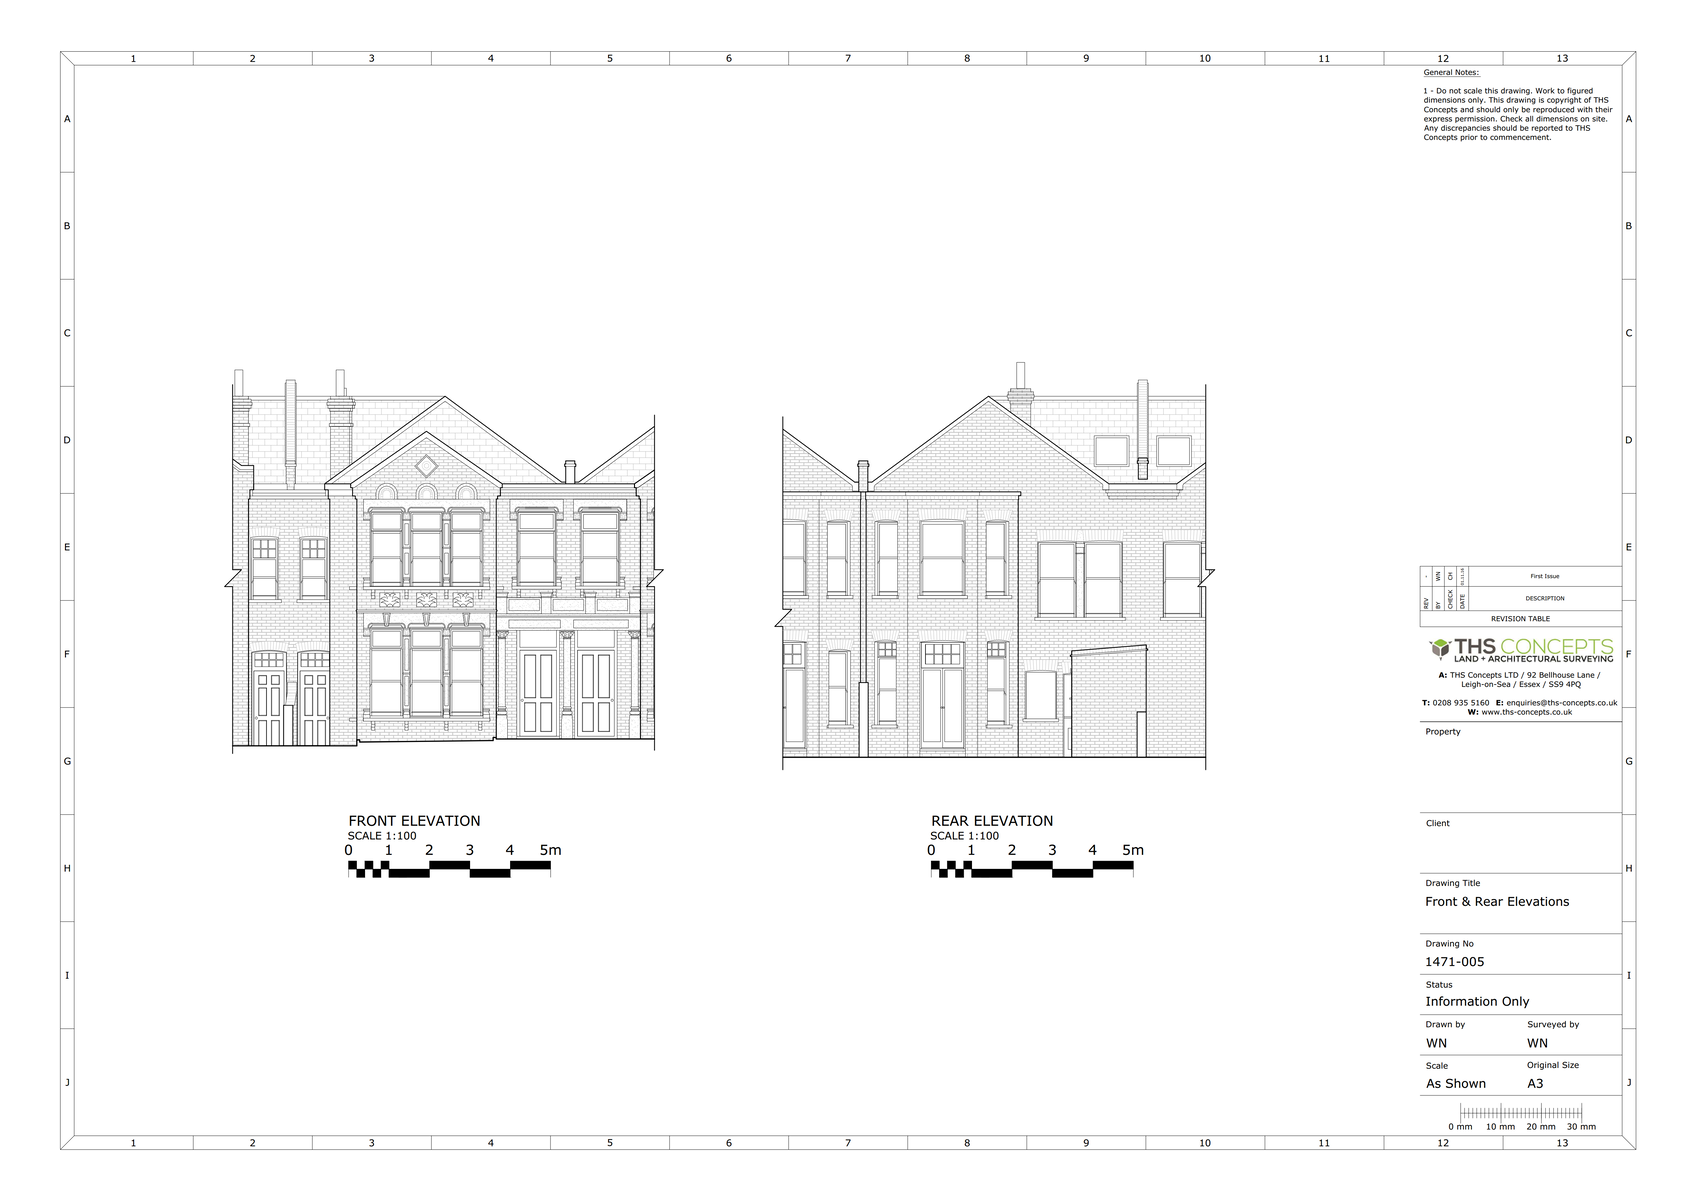 Floor Elevation Survey : Measured building survey drawings instant quote london